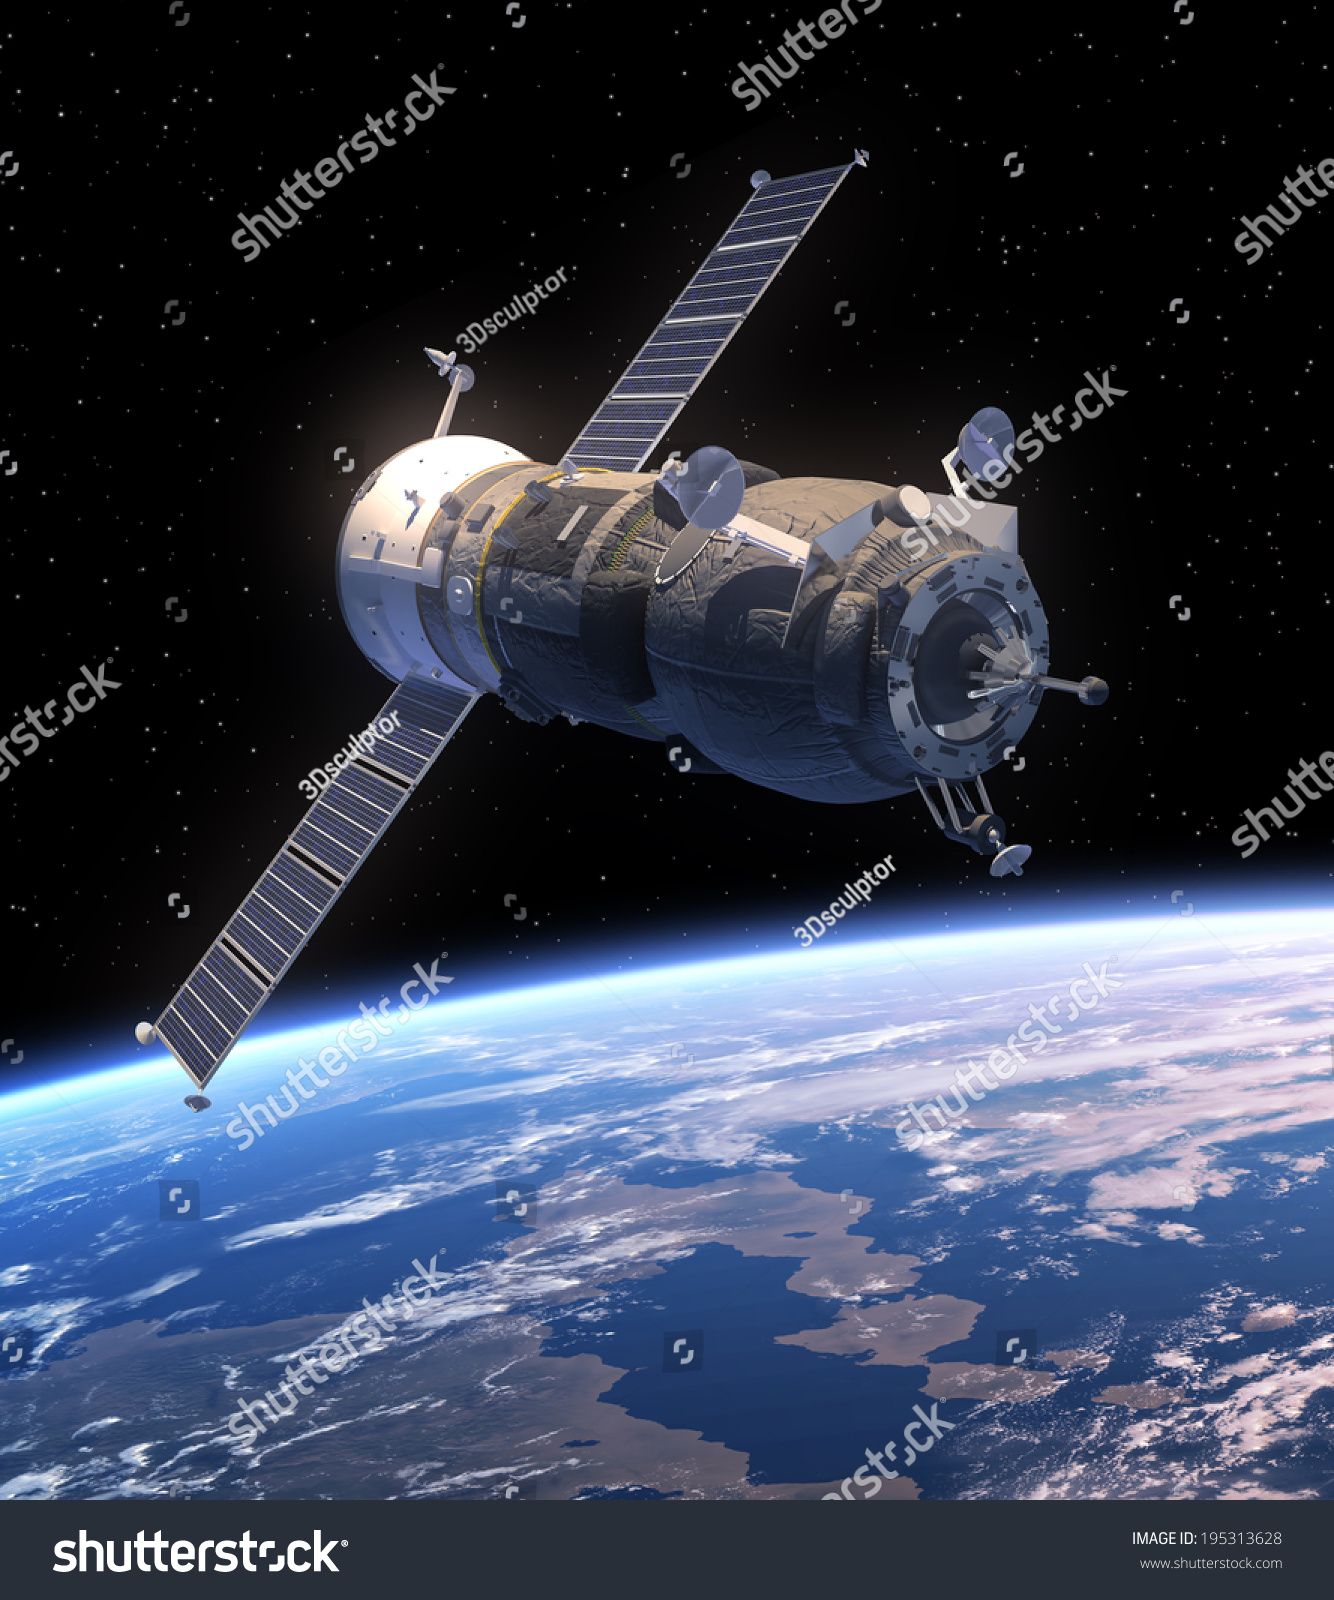 unknown spacecraft orbiting earth - photo #24